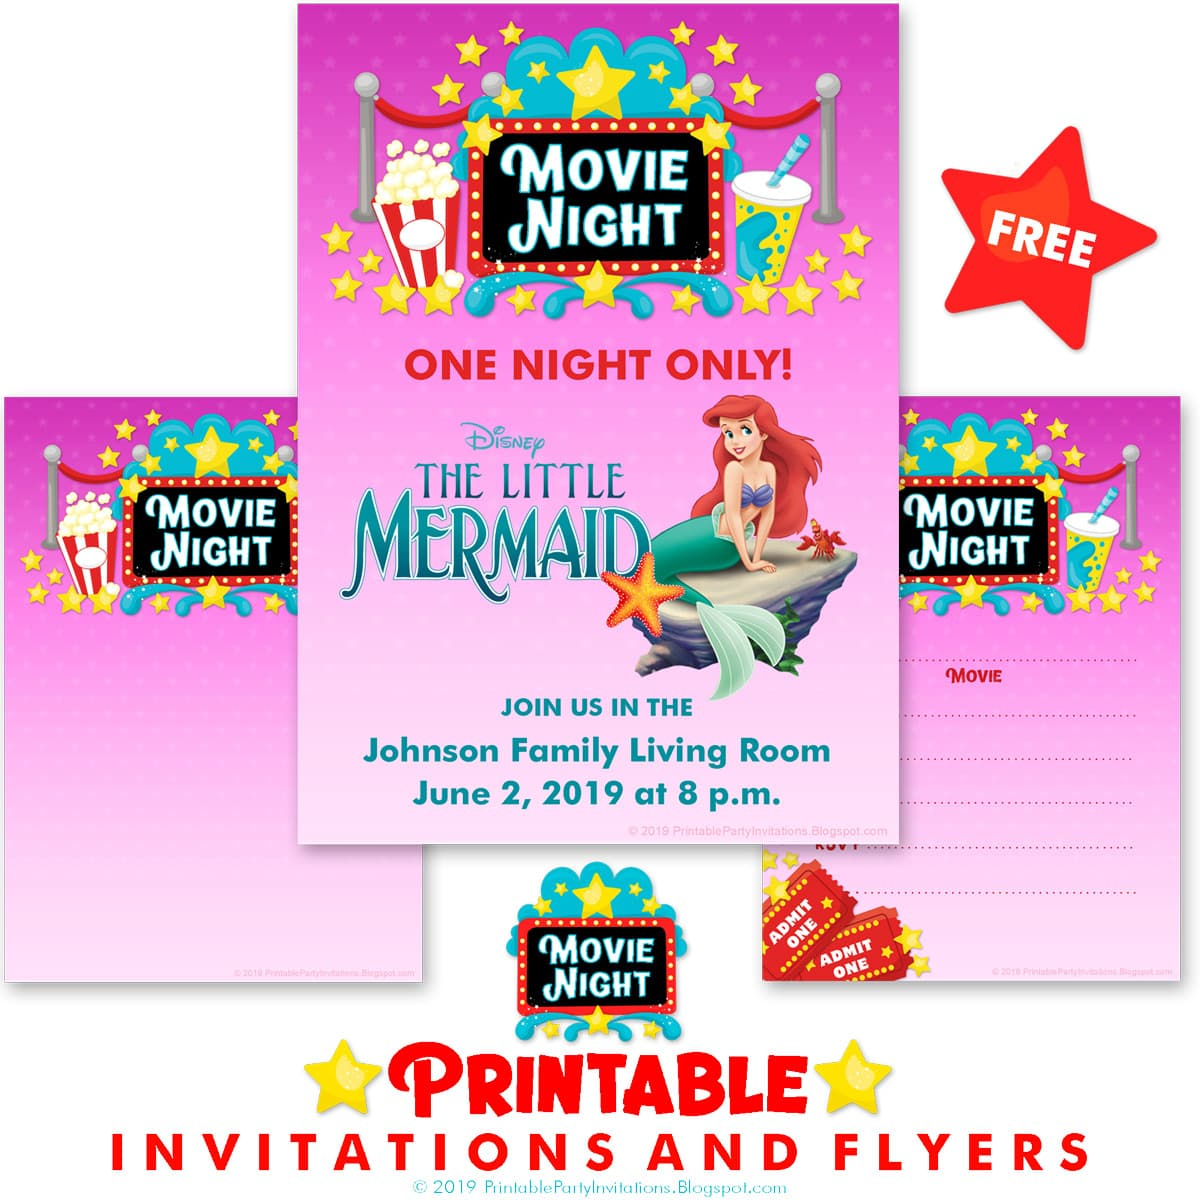 image regarding Movie Night Invitations Free Printable identified as Cant obtain subsution for tag [article.overall body]--\u003e Online video Night time